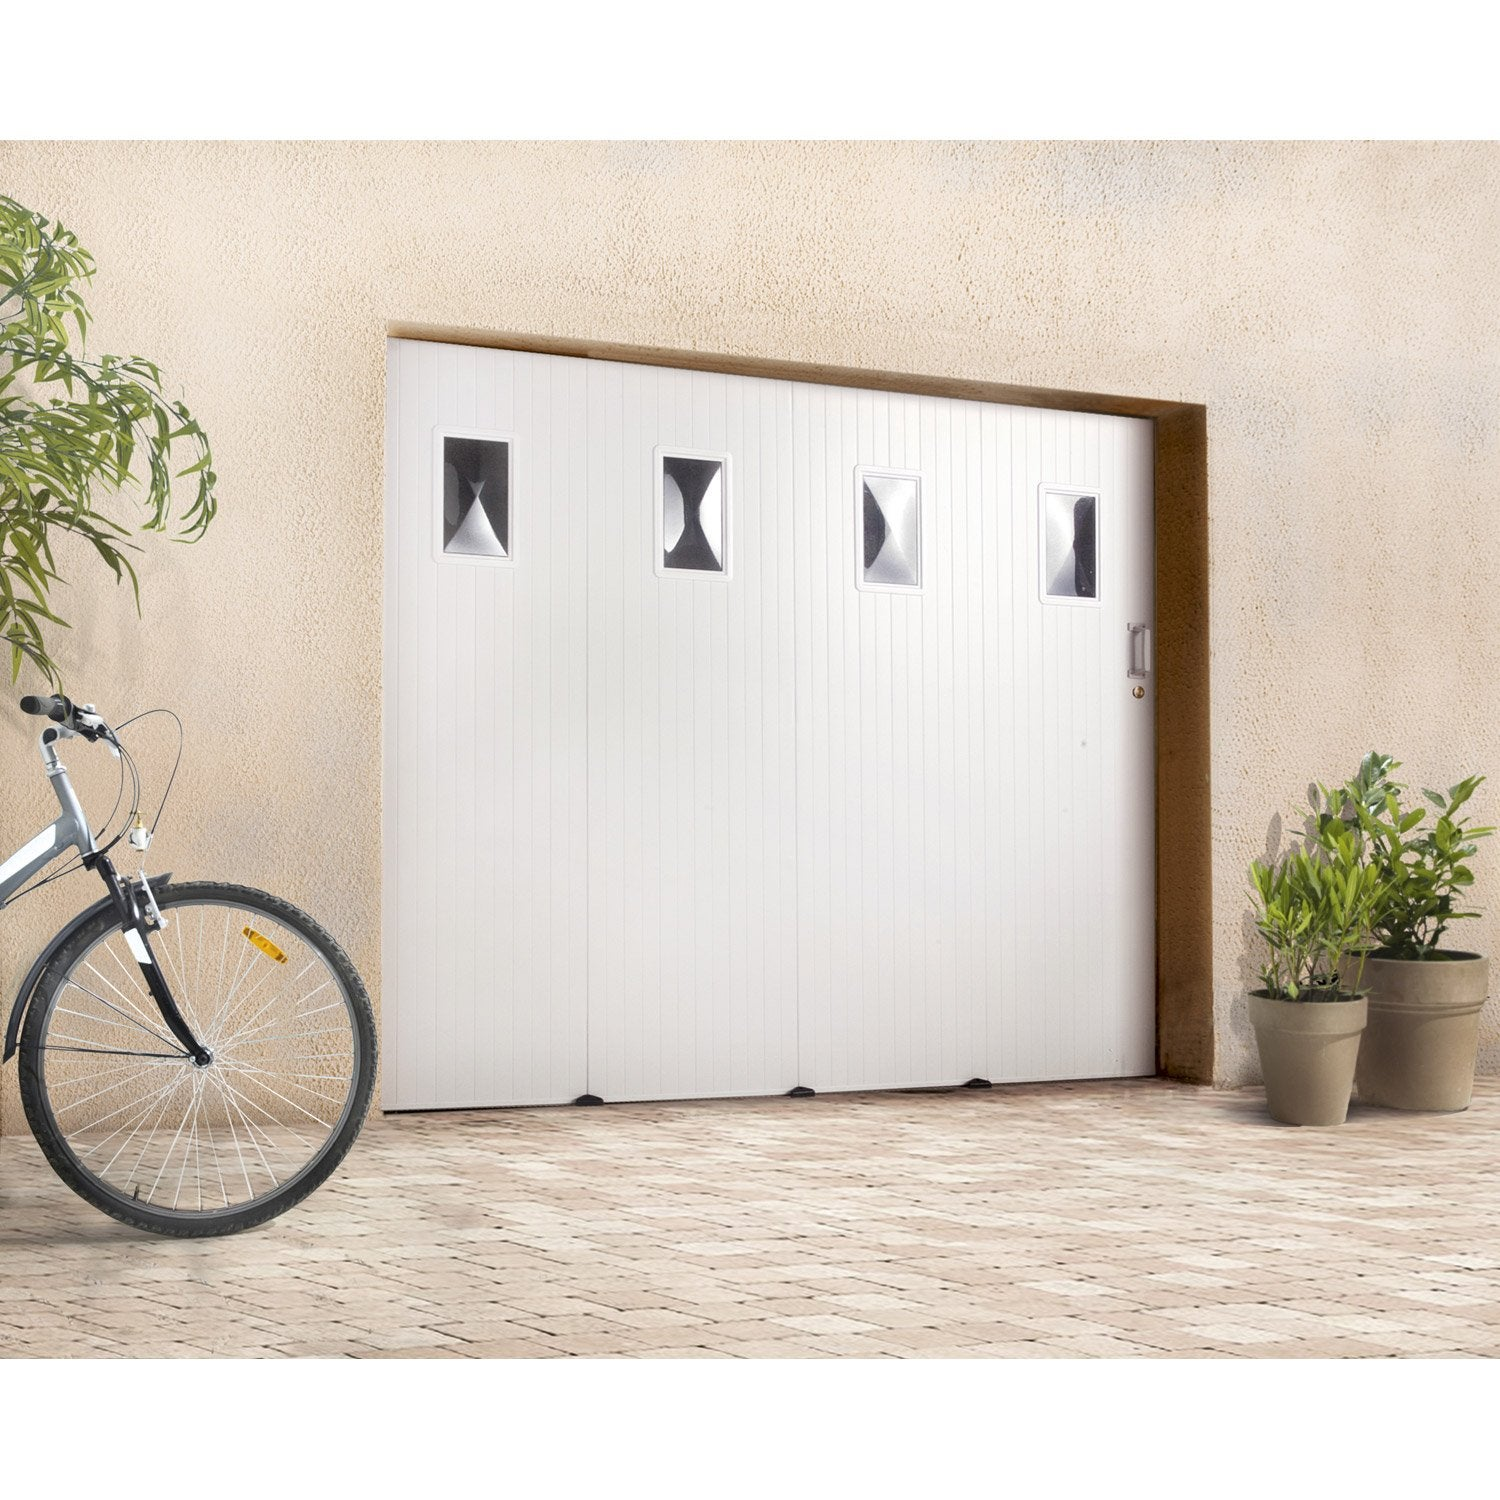 Porte de garage coulissante avec hublot primo x l for Avis porte de garage sectionnelle leroy merlin